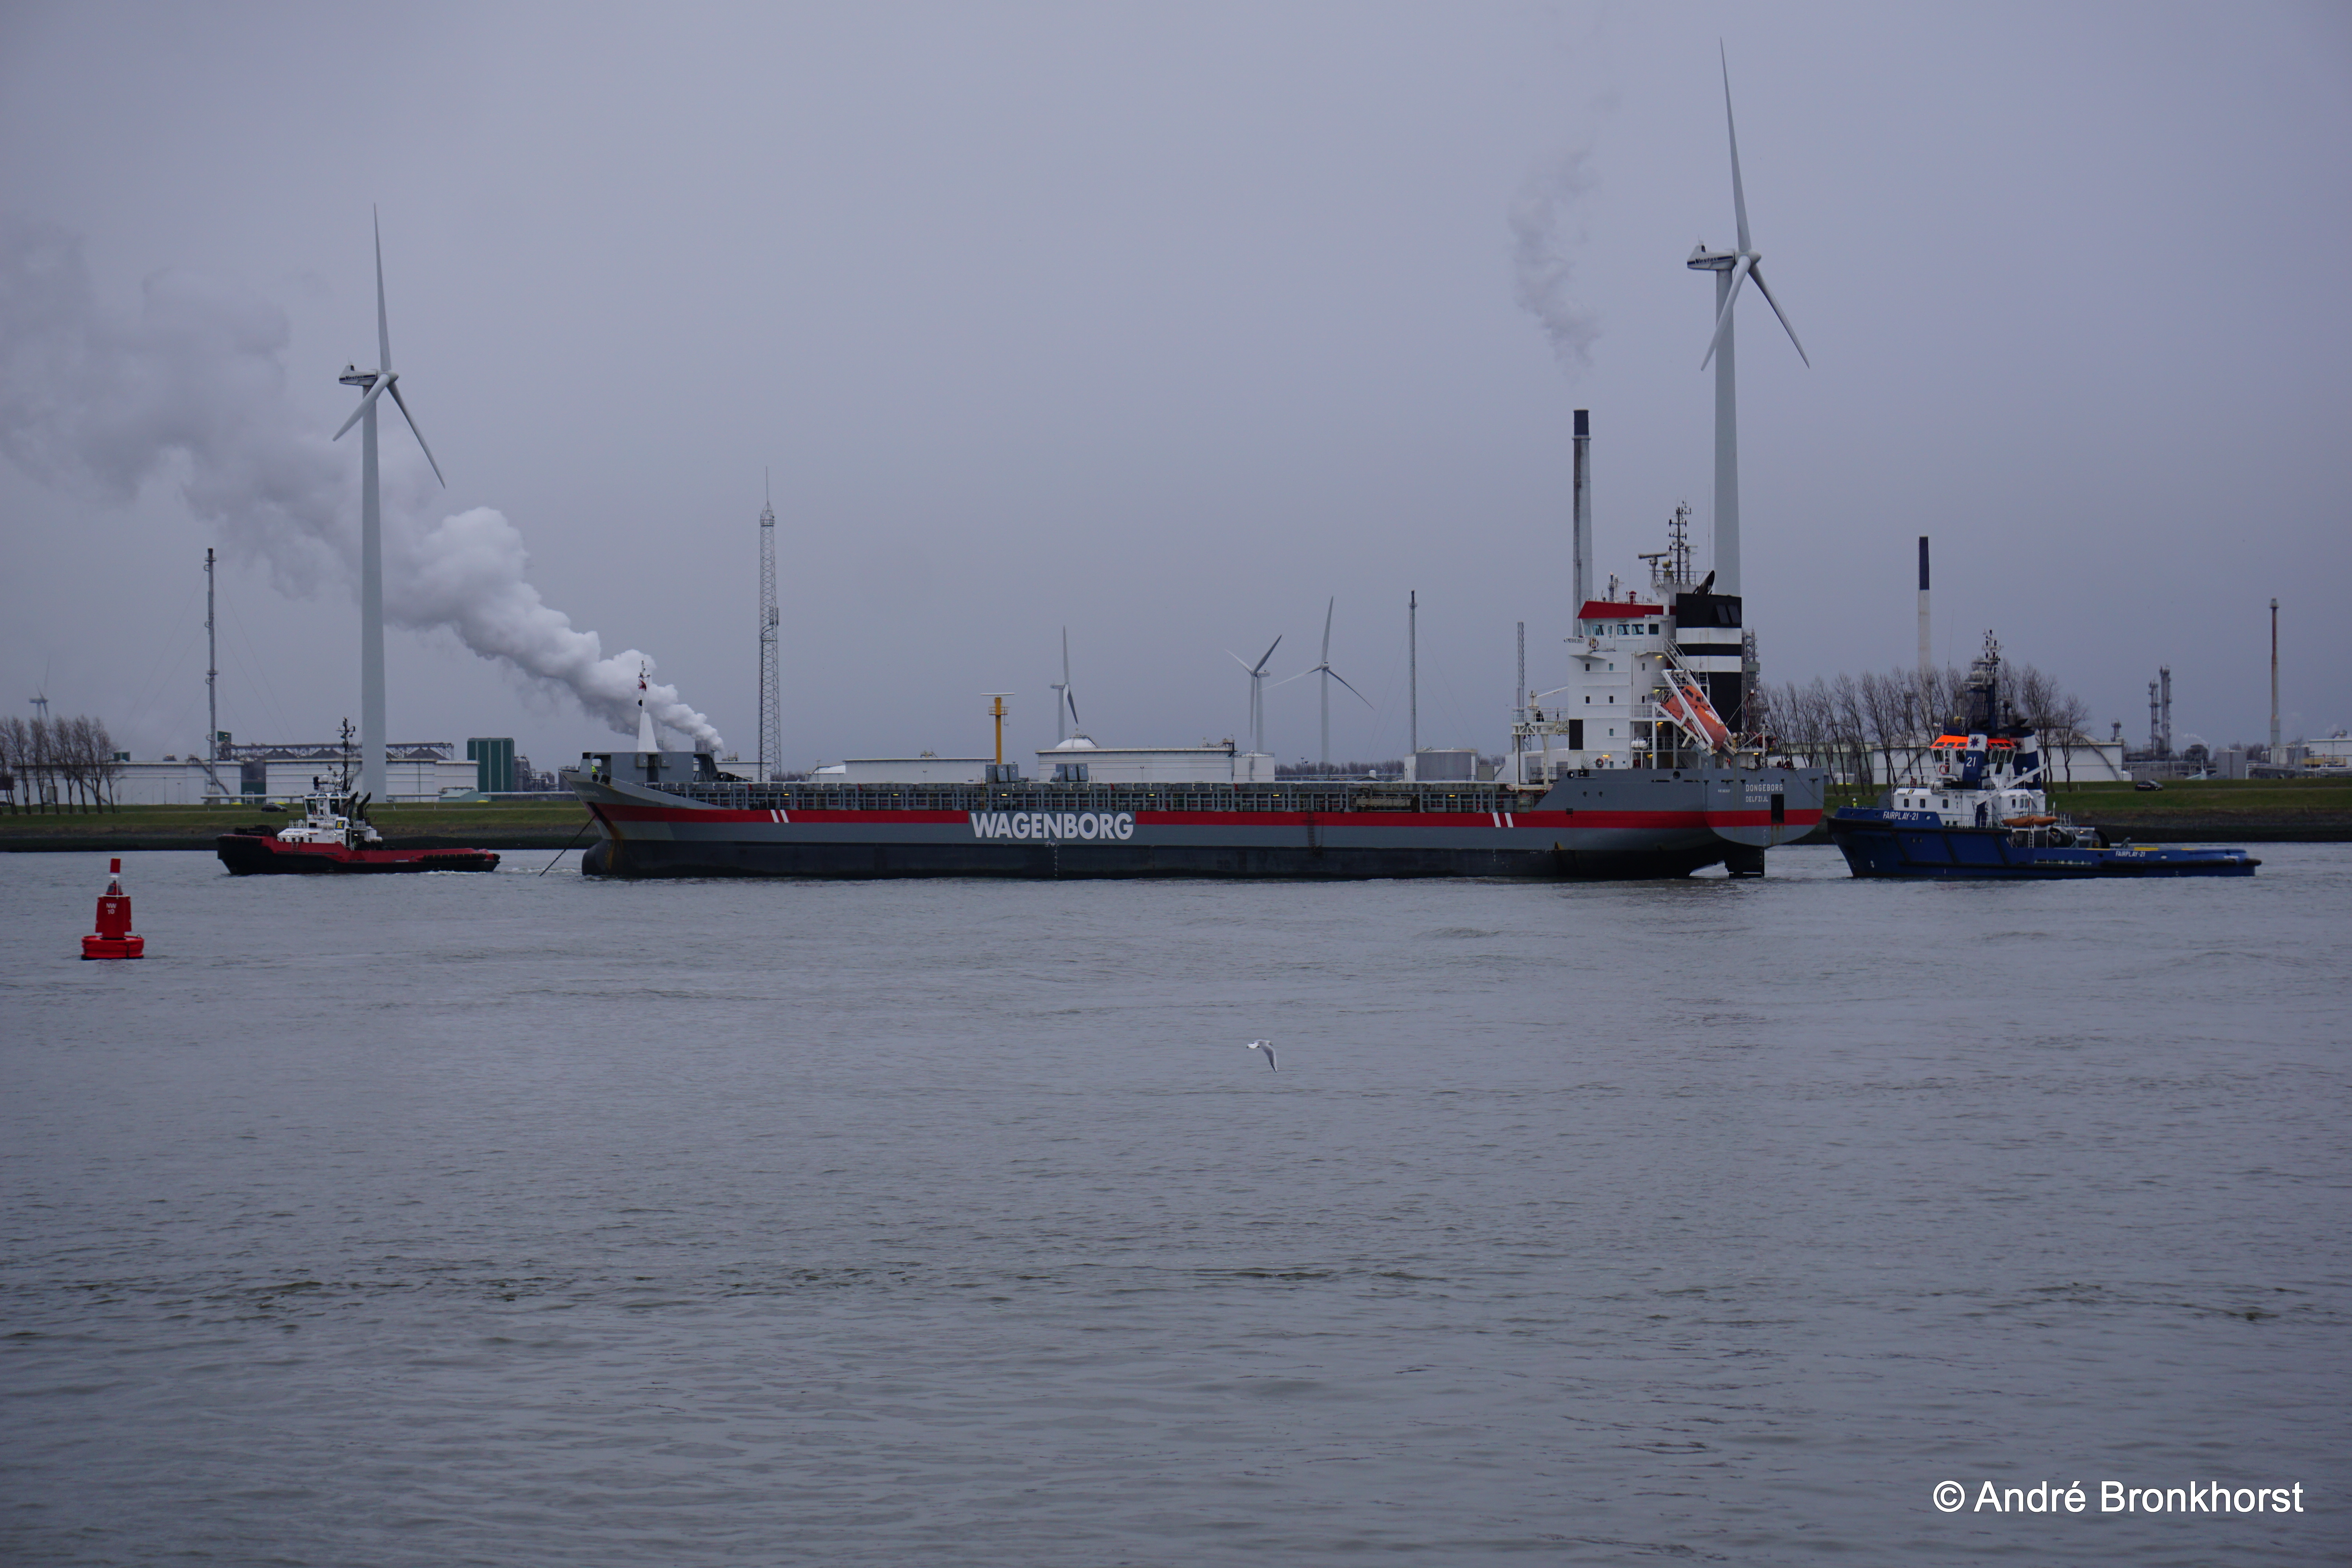 Fairplay 21 en Smit/Kotugsleper assisteren mv Dongeborg